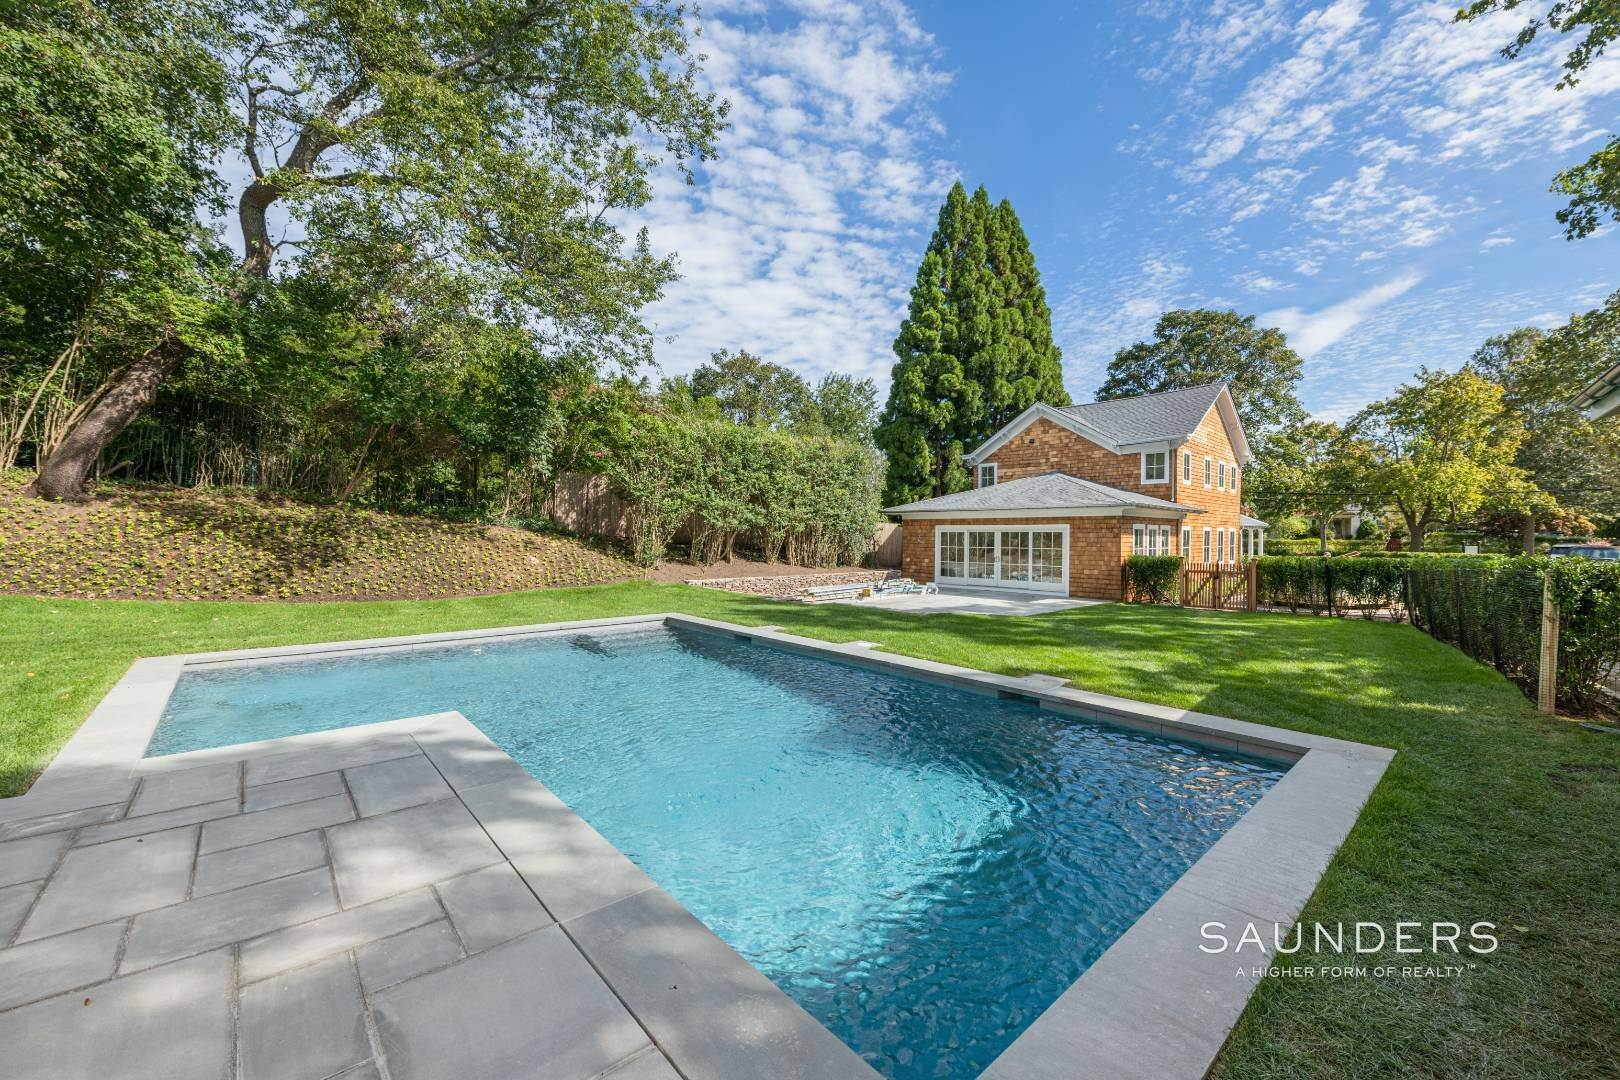 Single Family Homes for Sale at Village Modern Traditional 111 North Main Street, Southampton, Southampton Town, NY 11968